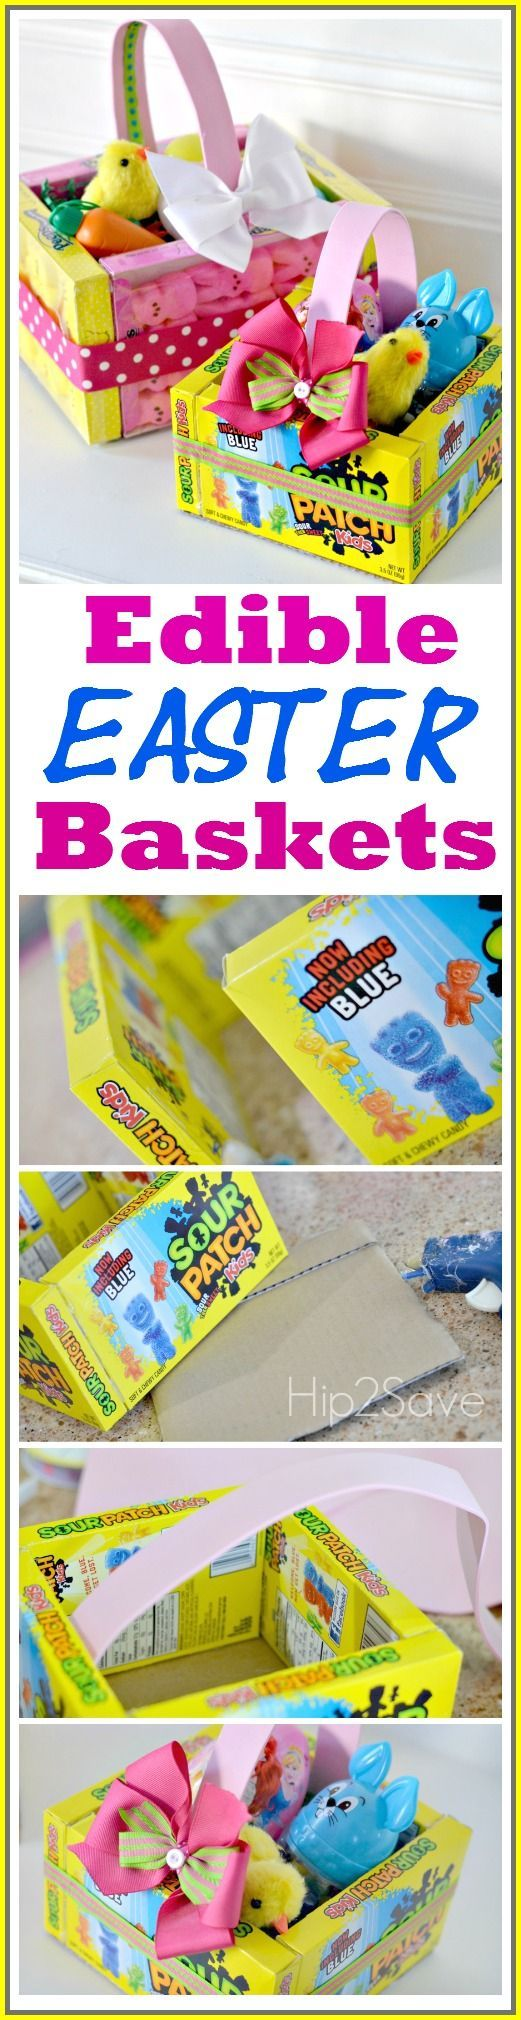 Best 25 easter baskets ideas on pinterest easter easter edible easter baskets easy easter craft negle Gallery